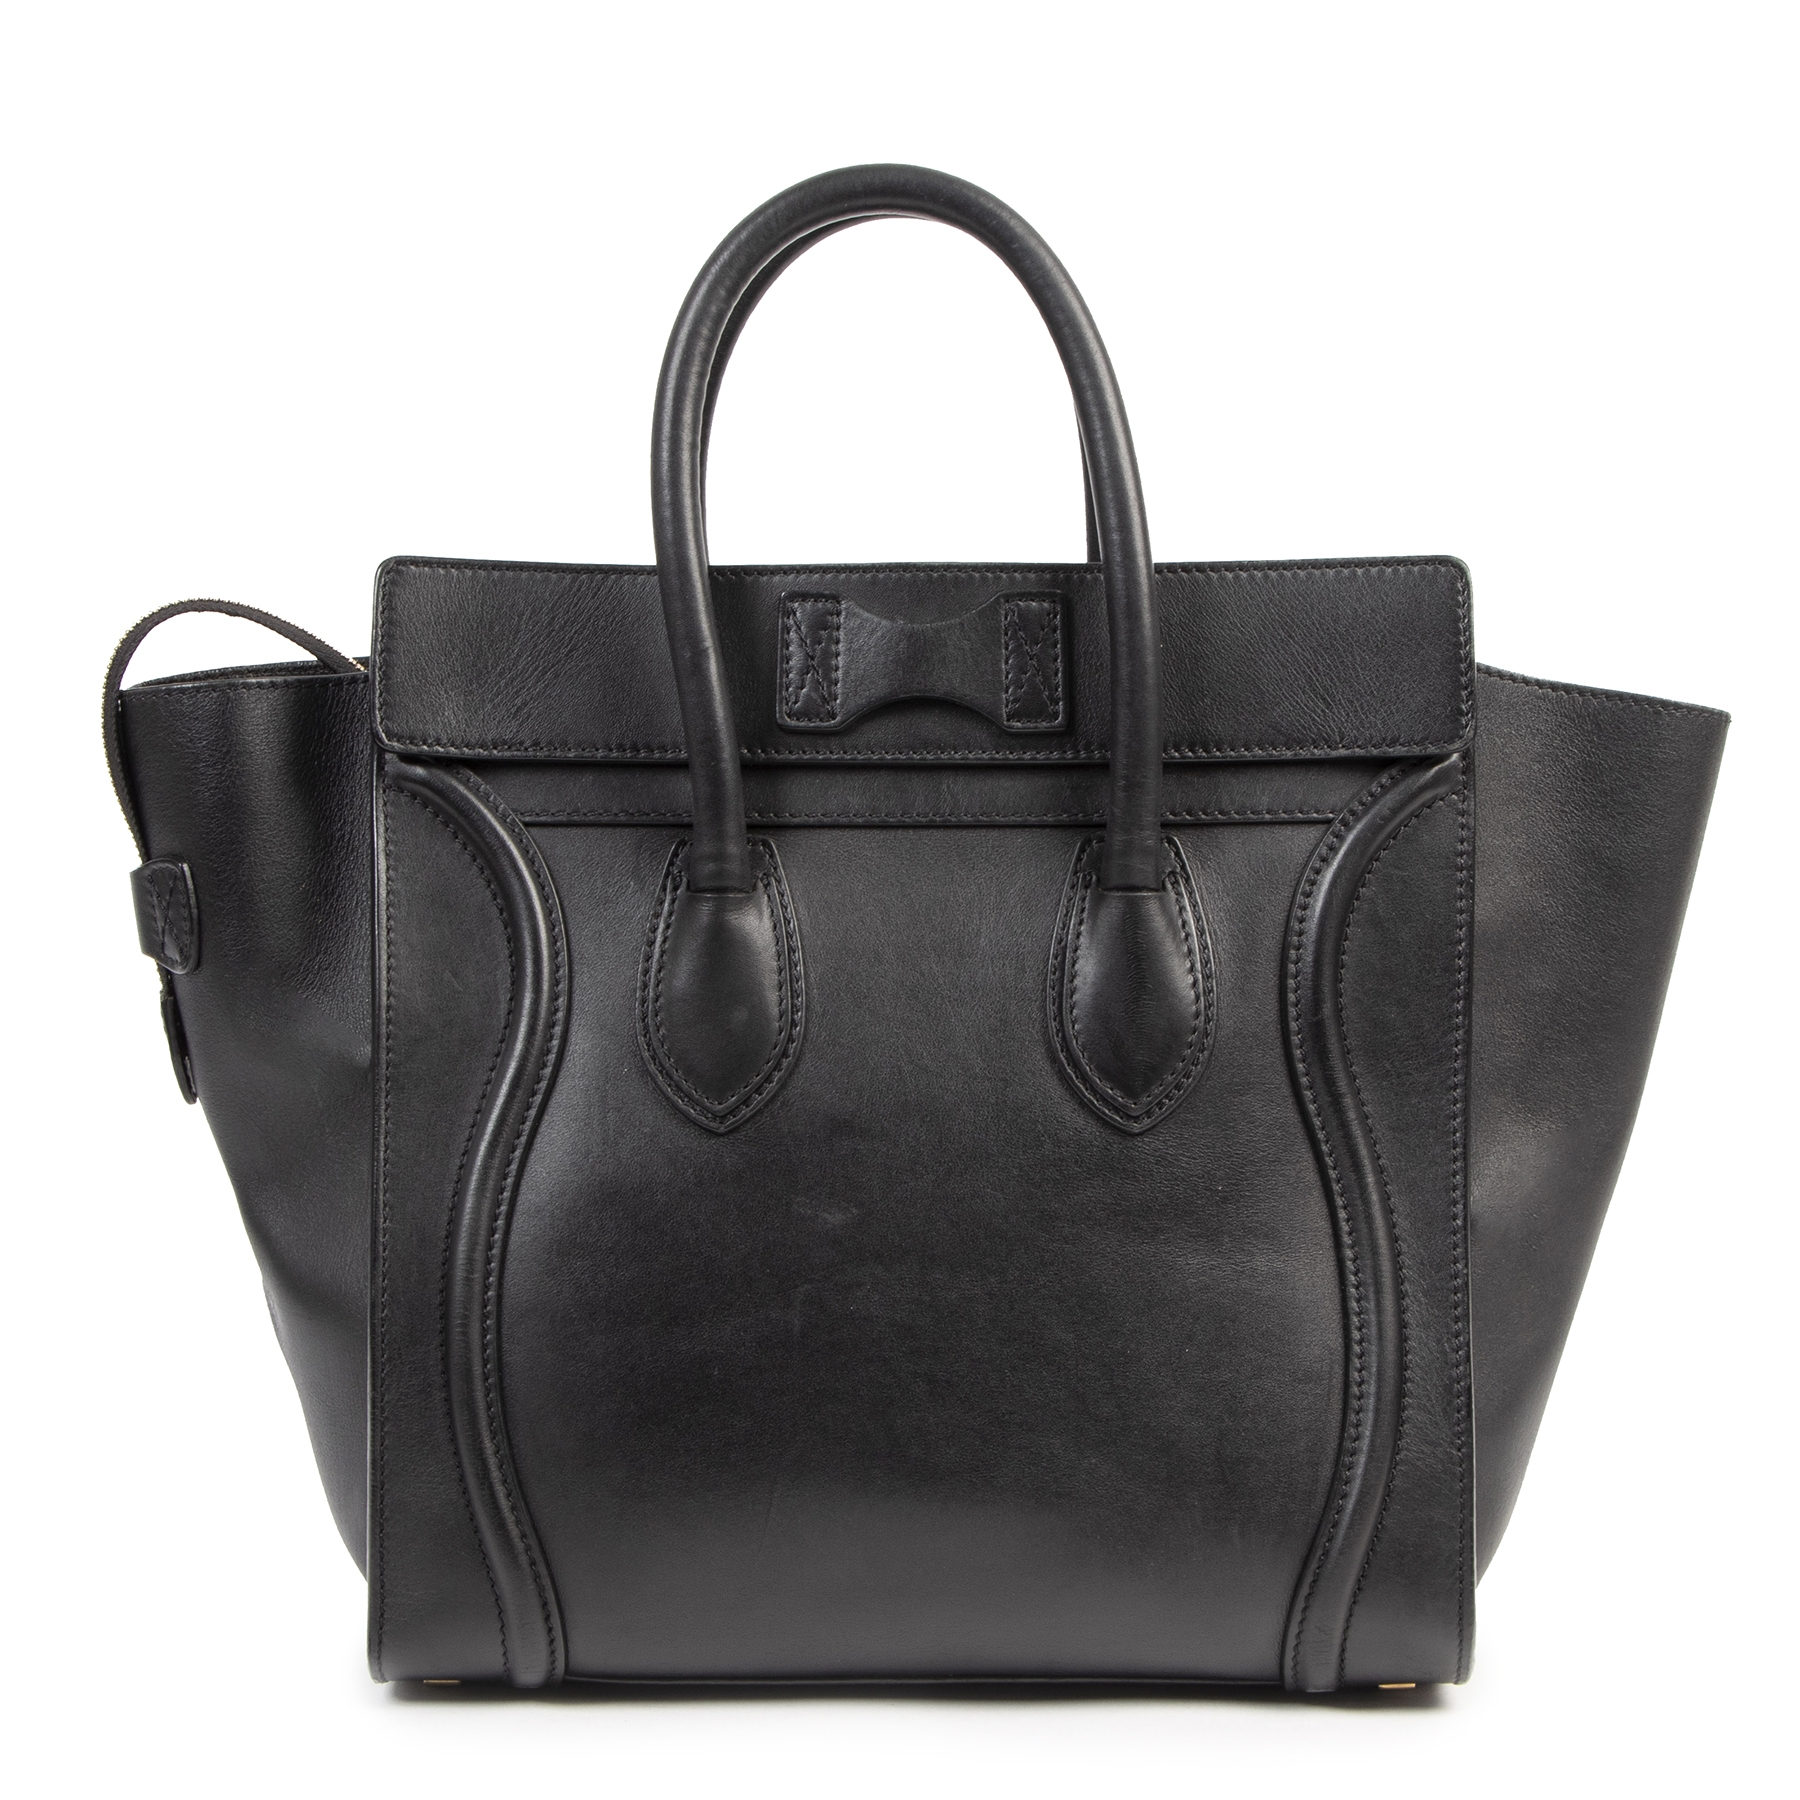 Authentic secondhand Celine Black Phantom Medium Tote designer bags fashion luxury vintage webshop safe secure online shopping worldwide shipping designer high end brands